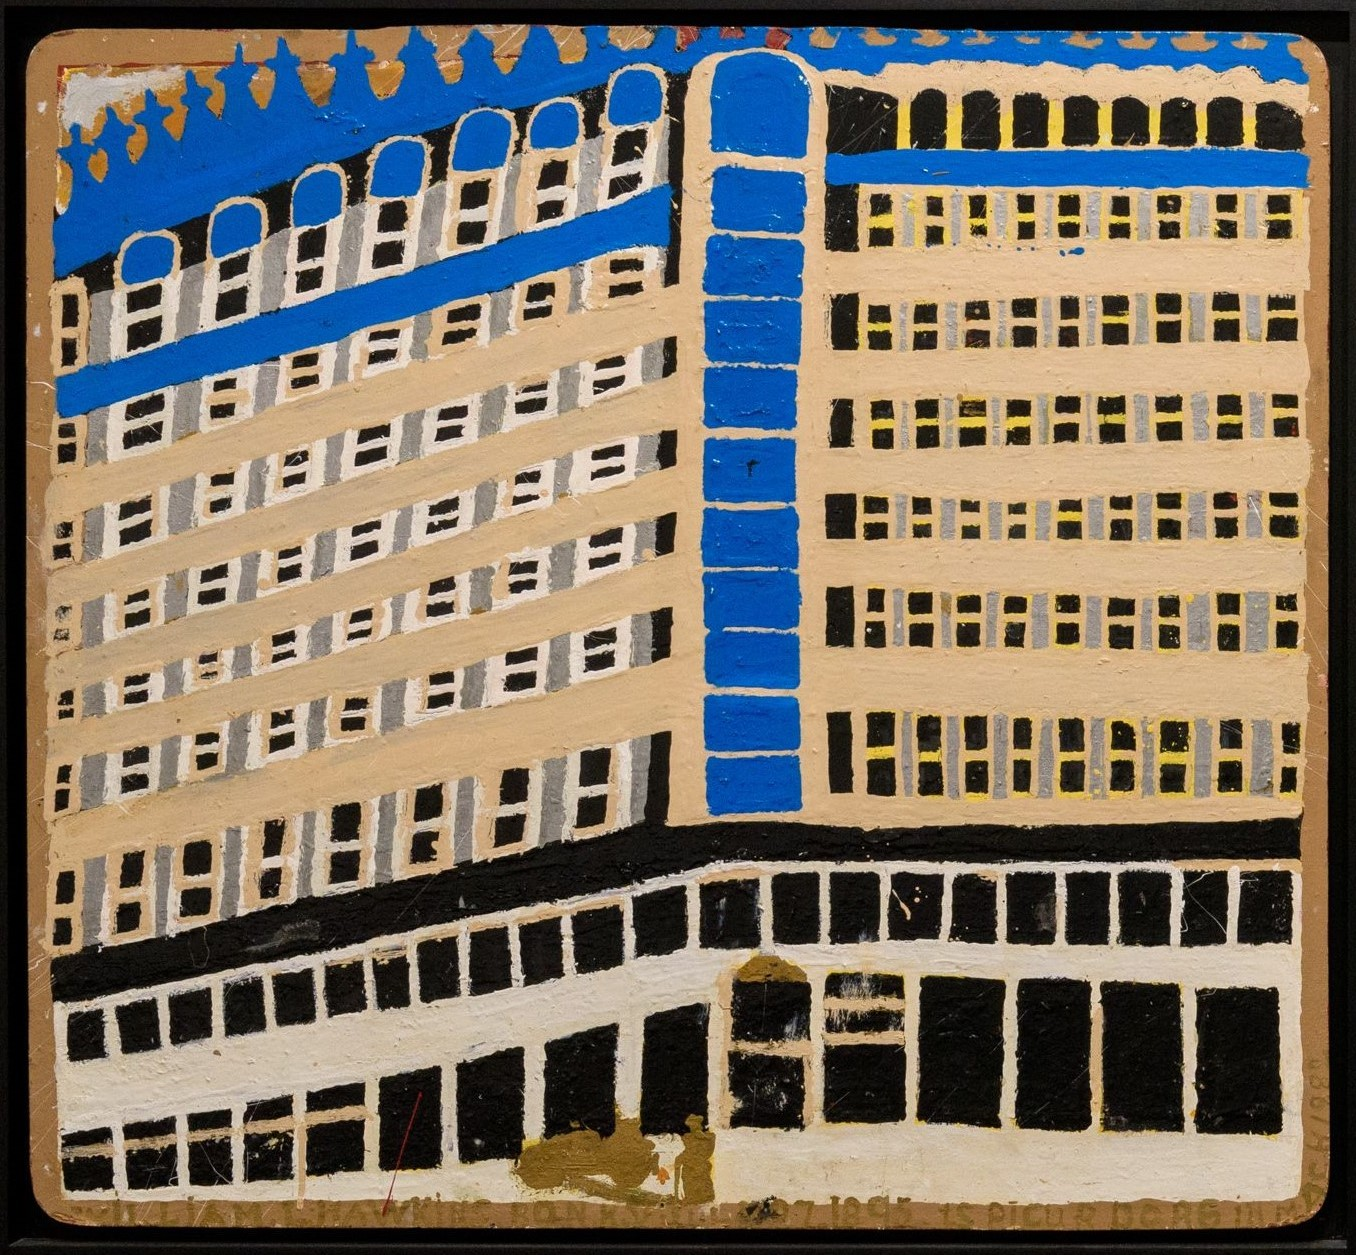 Painting of a building with white and black walls and windows on the first two floors and a brown exterior for the remaining 7 floors. Blue details at the top of the painting.